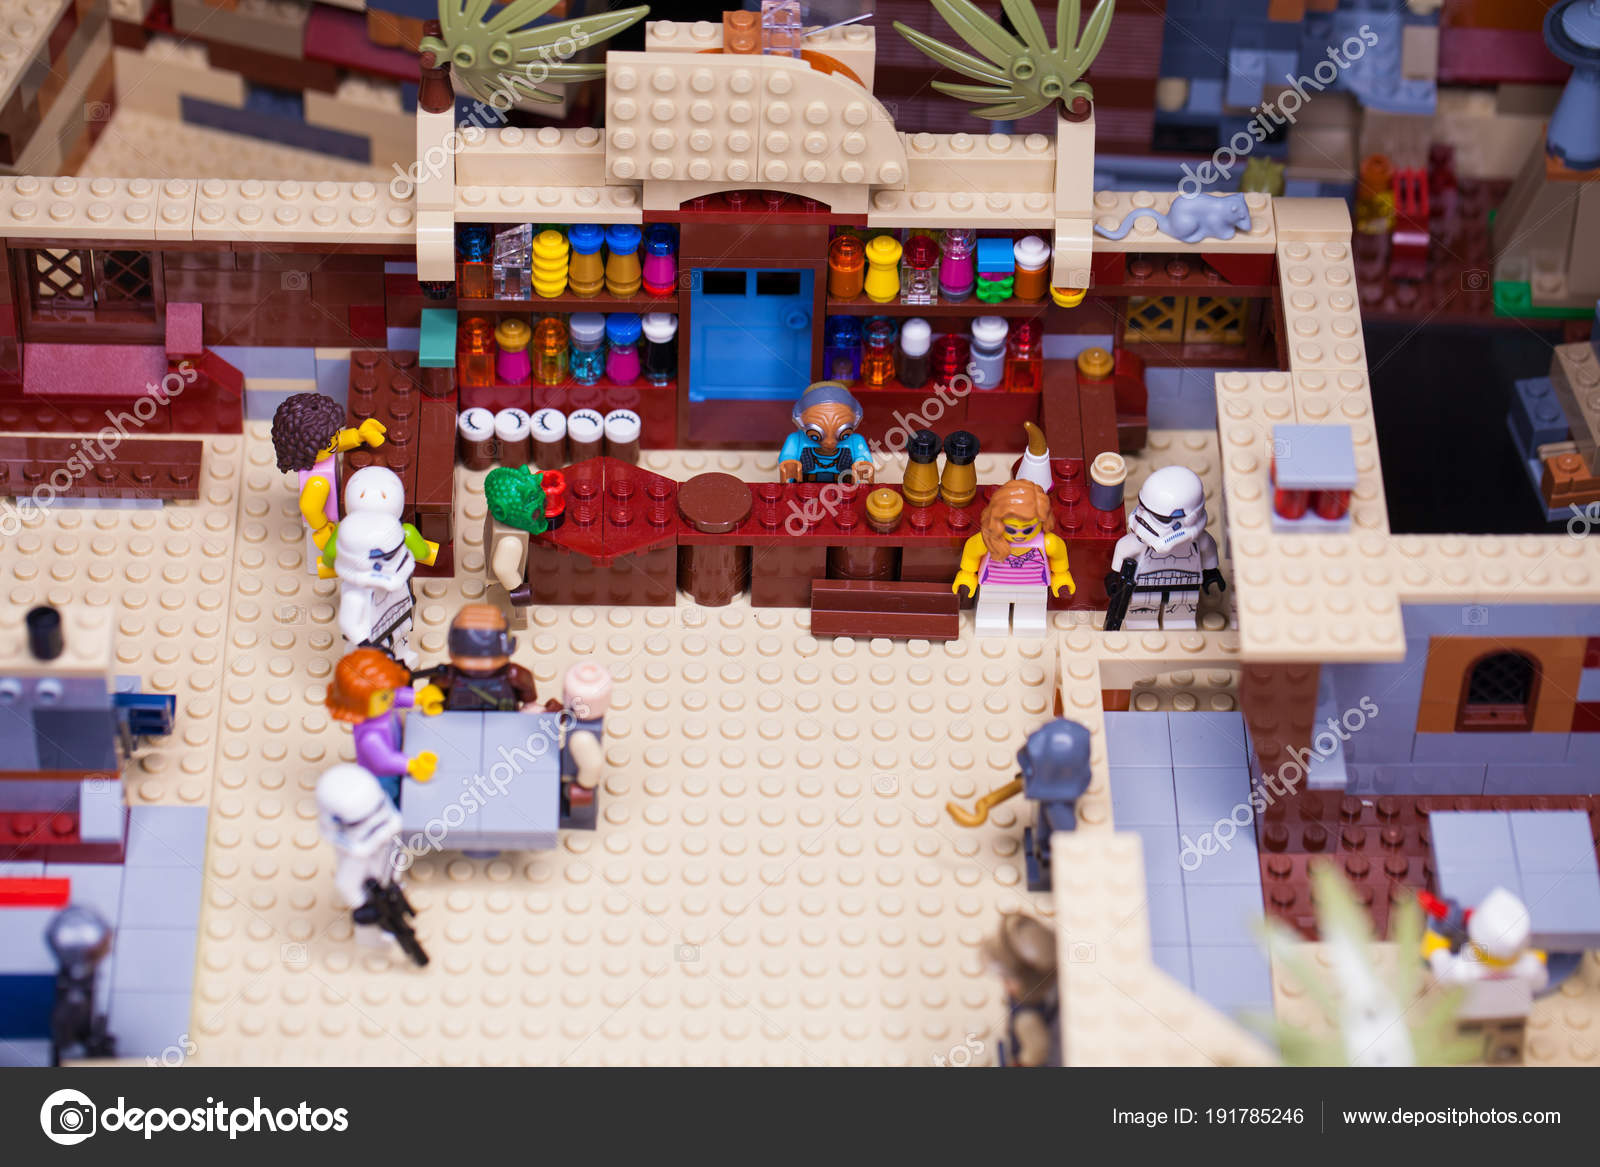 RUSSIA, April 12, 2018  Constructor Lego Star Wars  Episode IV